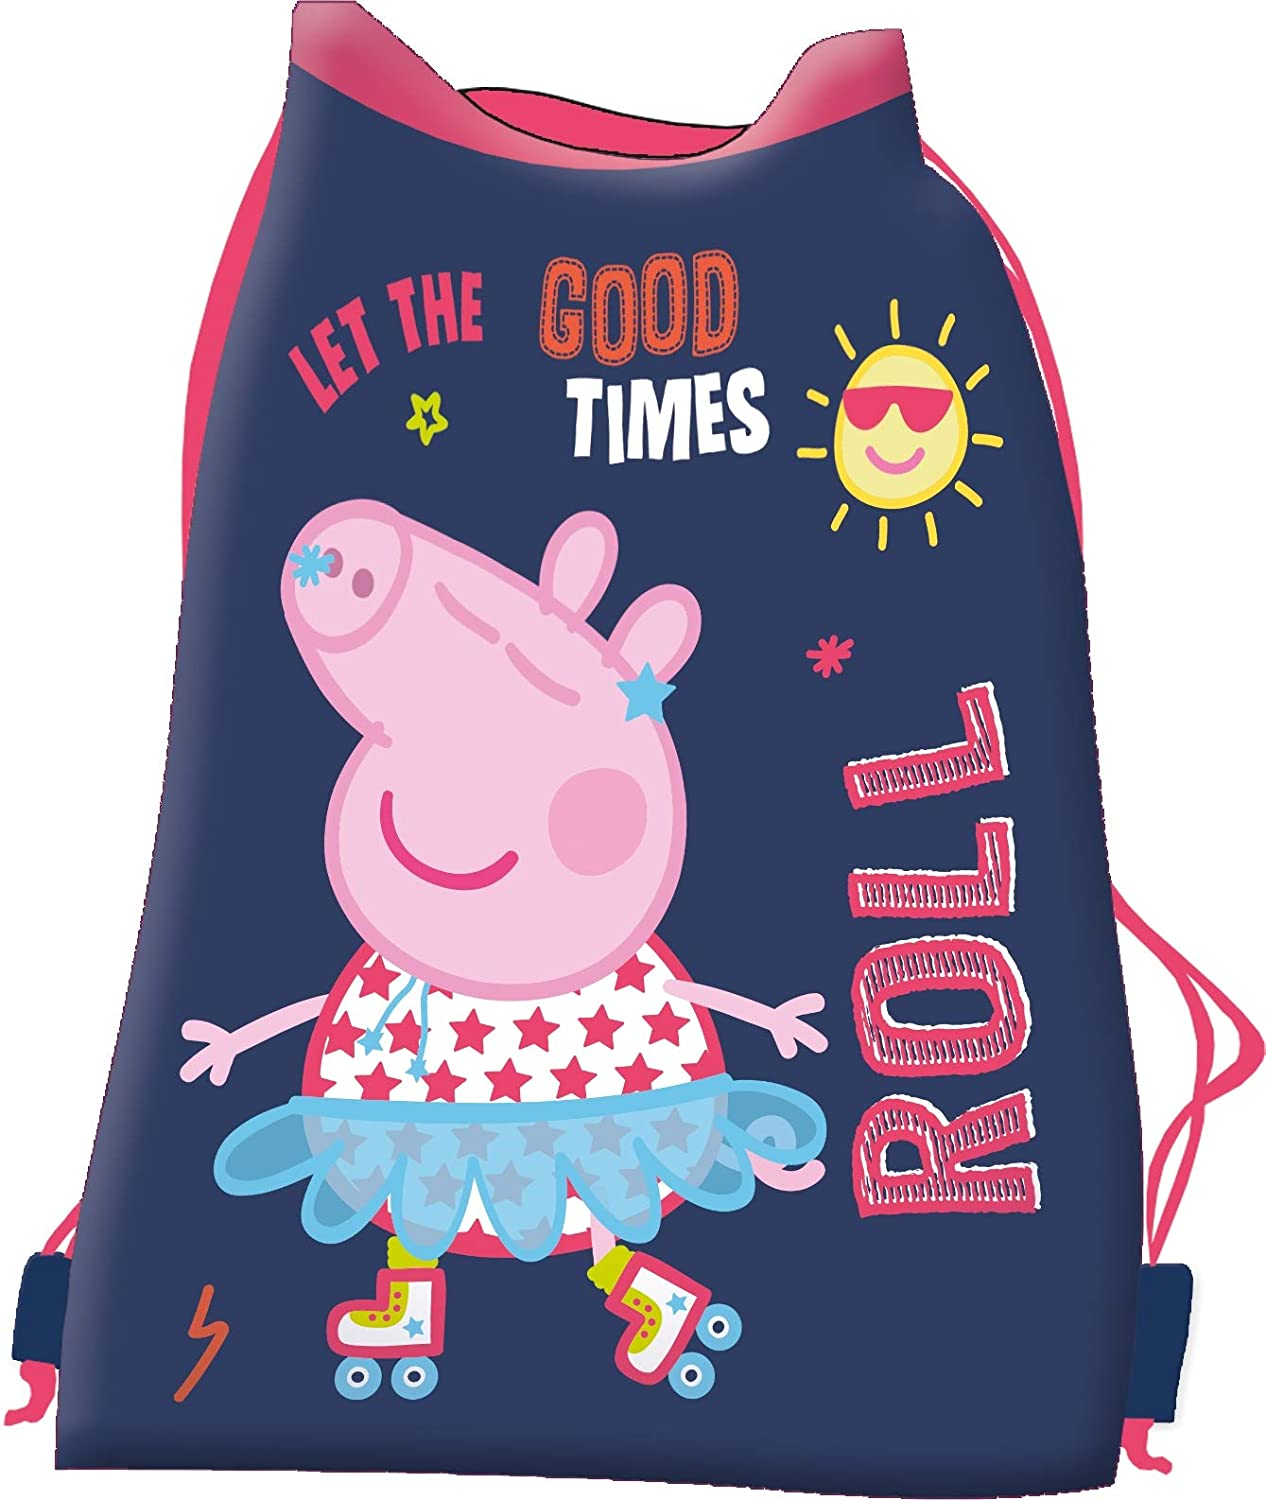 Peppa Pig Backpack Set with 3-Piece Glitter Set with Sandwich Box and Bottle for Kindergarten Cr/èche Pink and Black